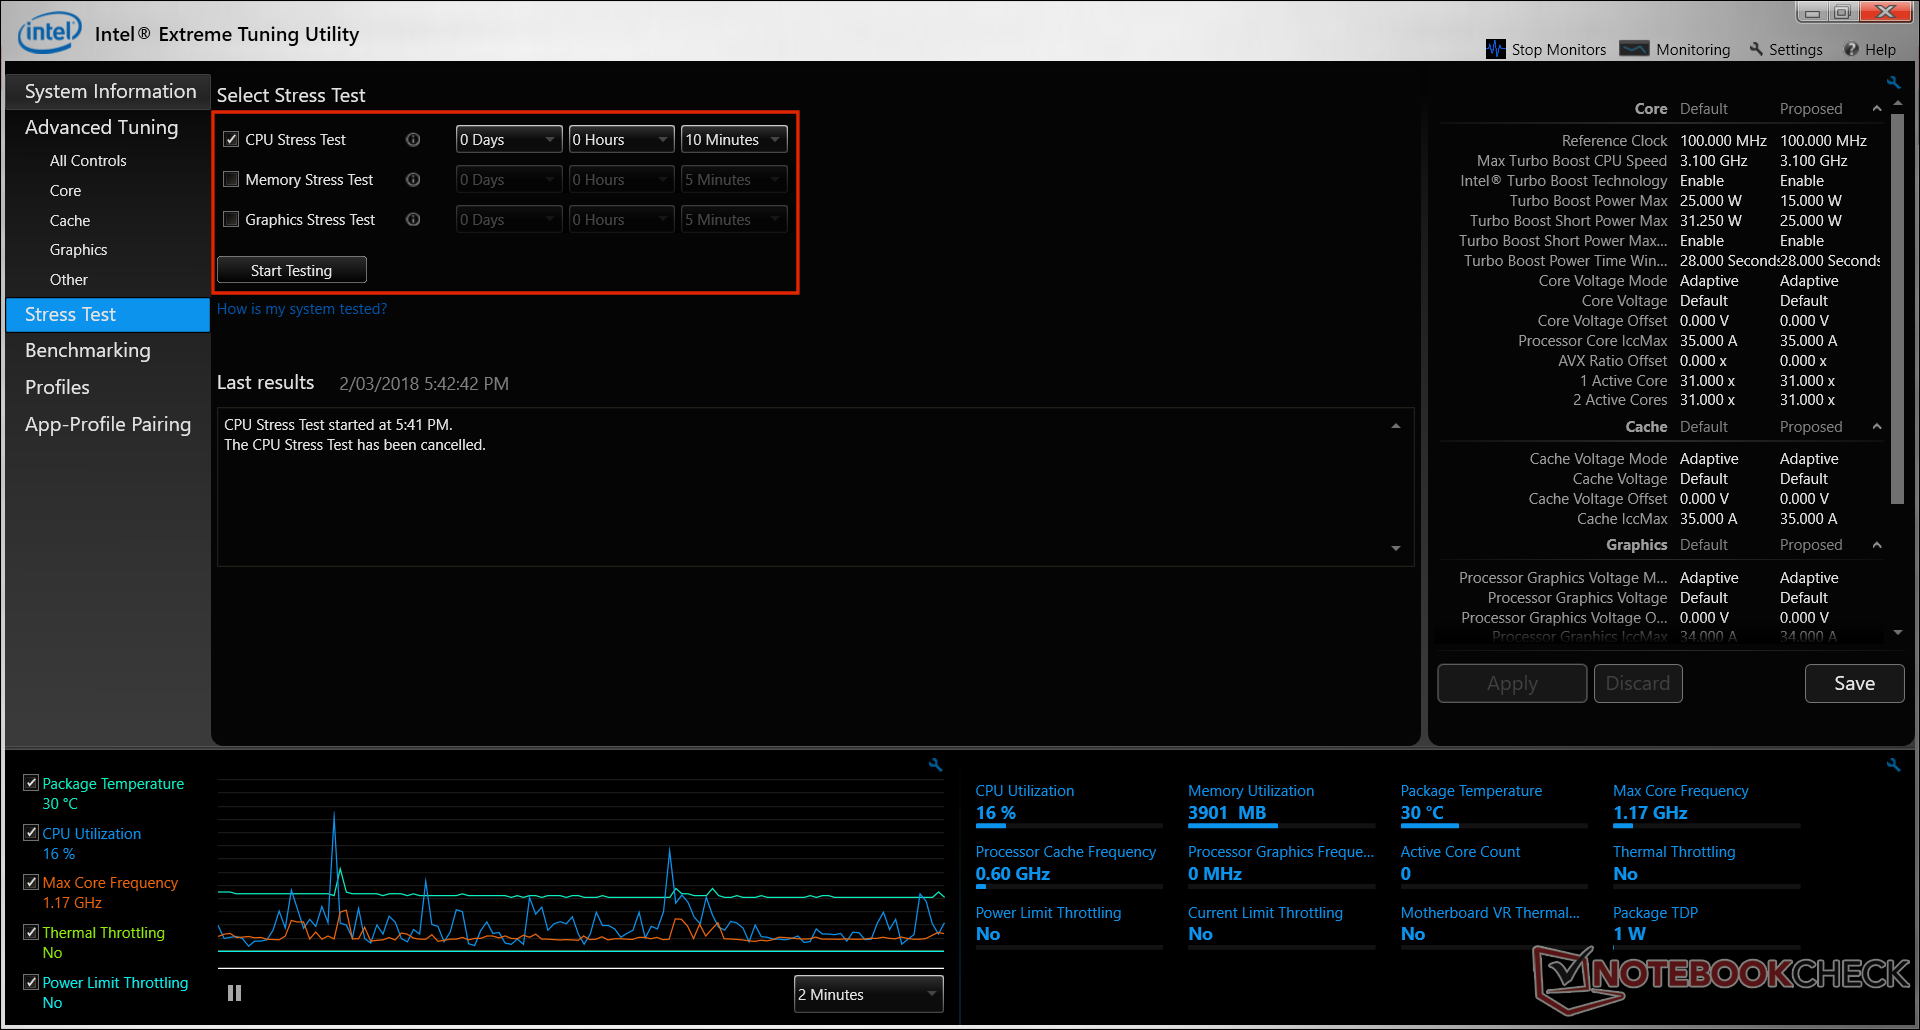 Intel Extreme Tuning Utility (XTU) Undervolting Guide